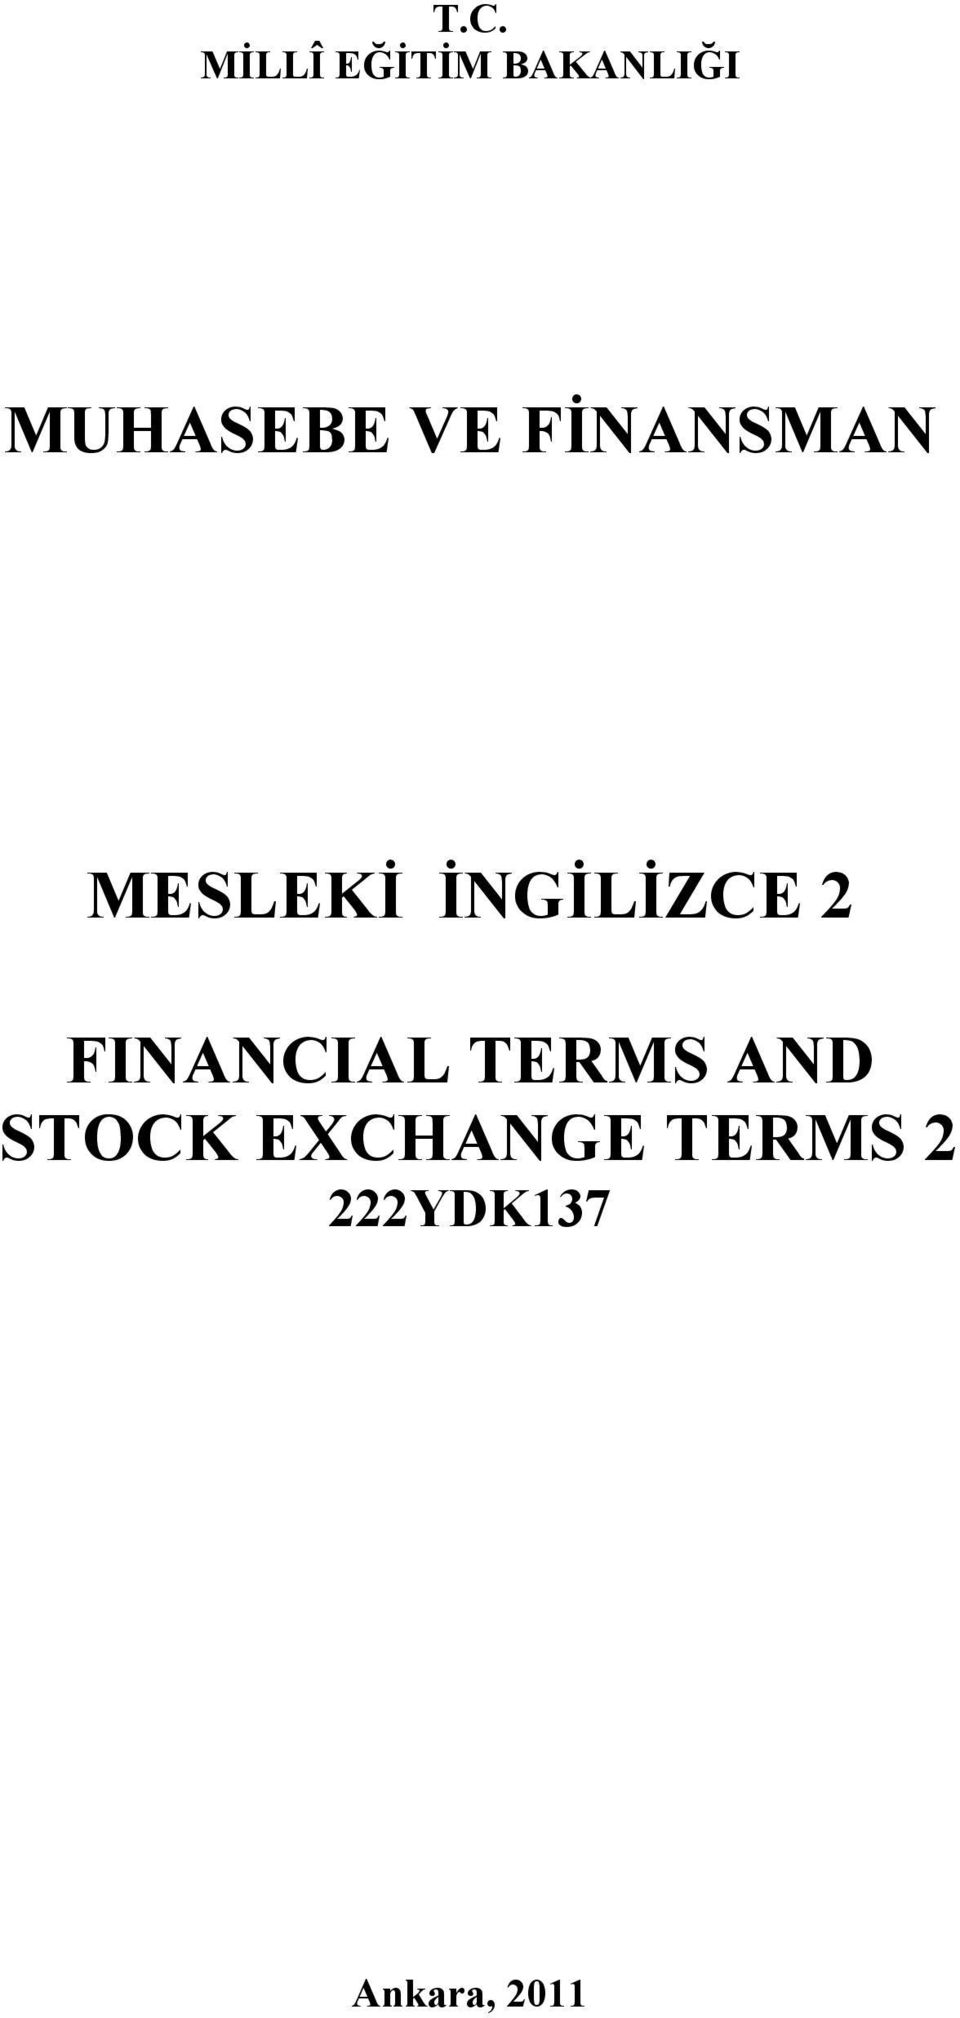 İNGİLİZCE 2 FINANCIAL TERMS AND